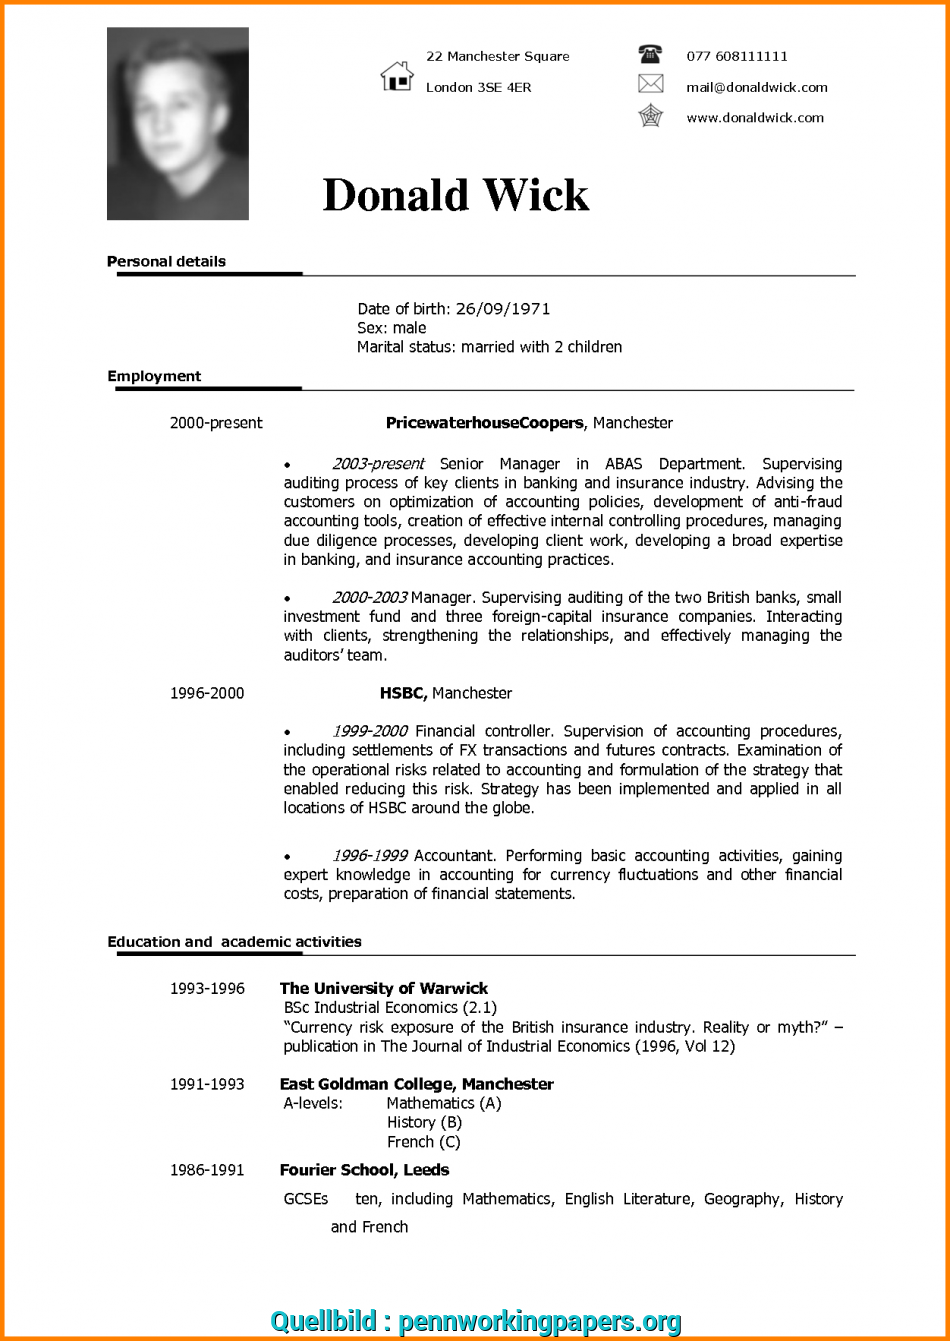 Gut English Resume Templates.Free-Resume-Templates-Download-Template ...